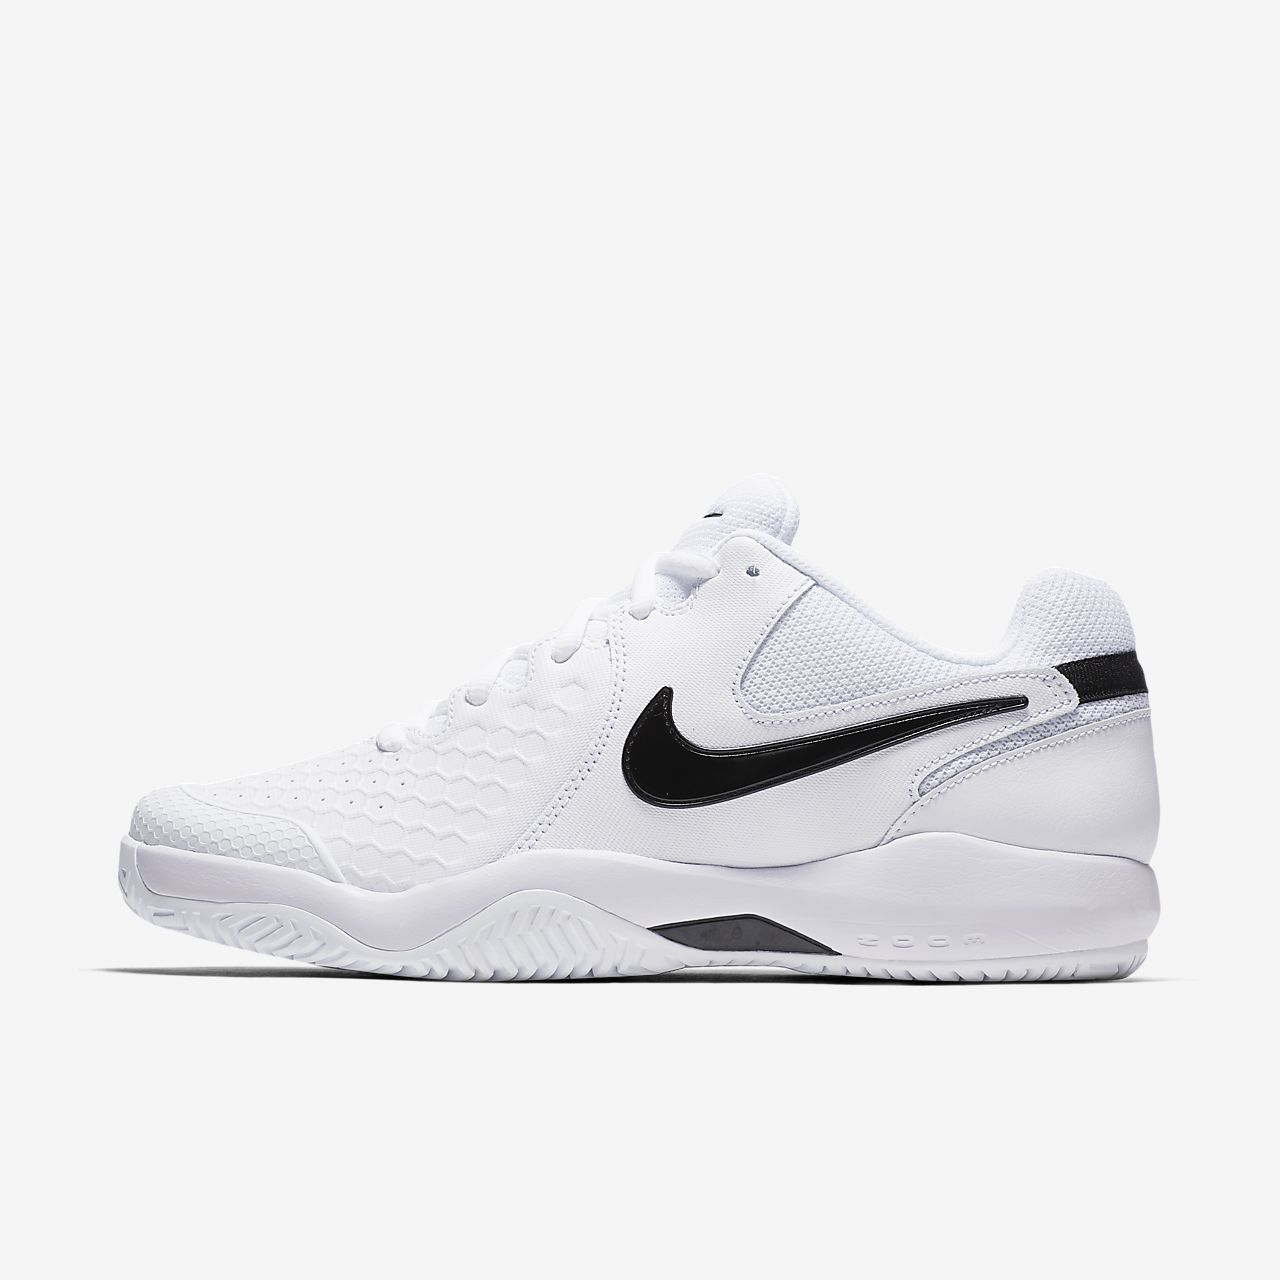 561bcfde7ef59 NikeCourt Air Zoom Resistance Men s Hard Court Tennis Shoe. Nike.com GB